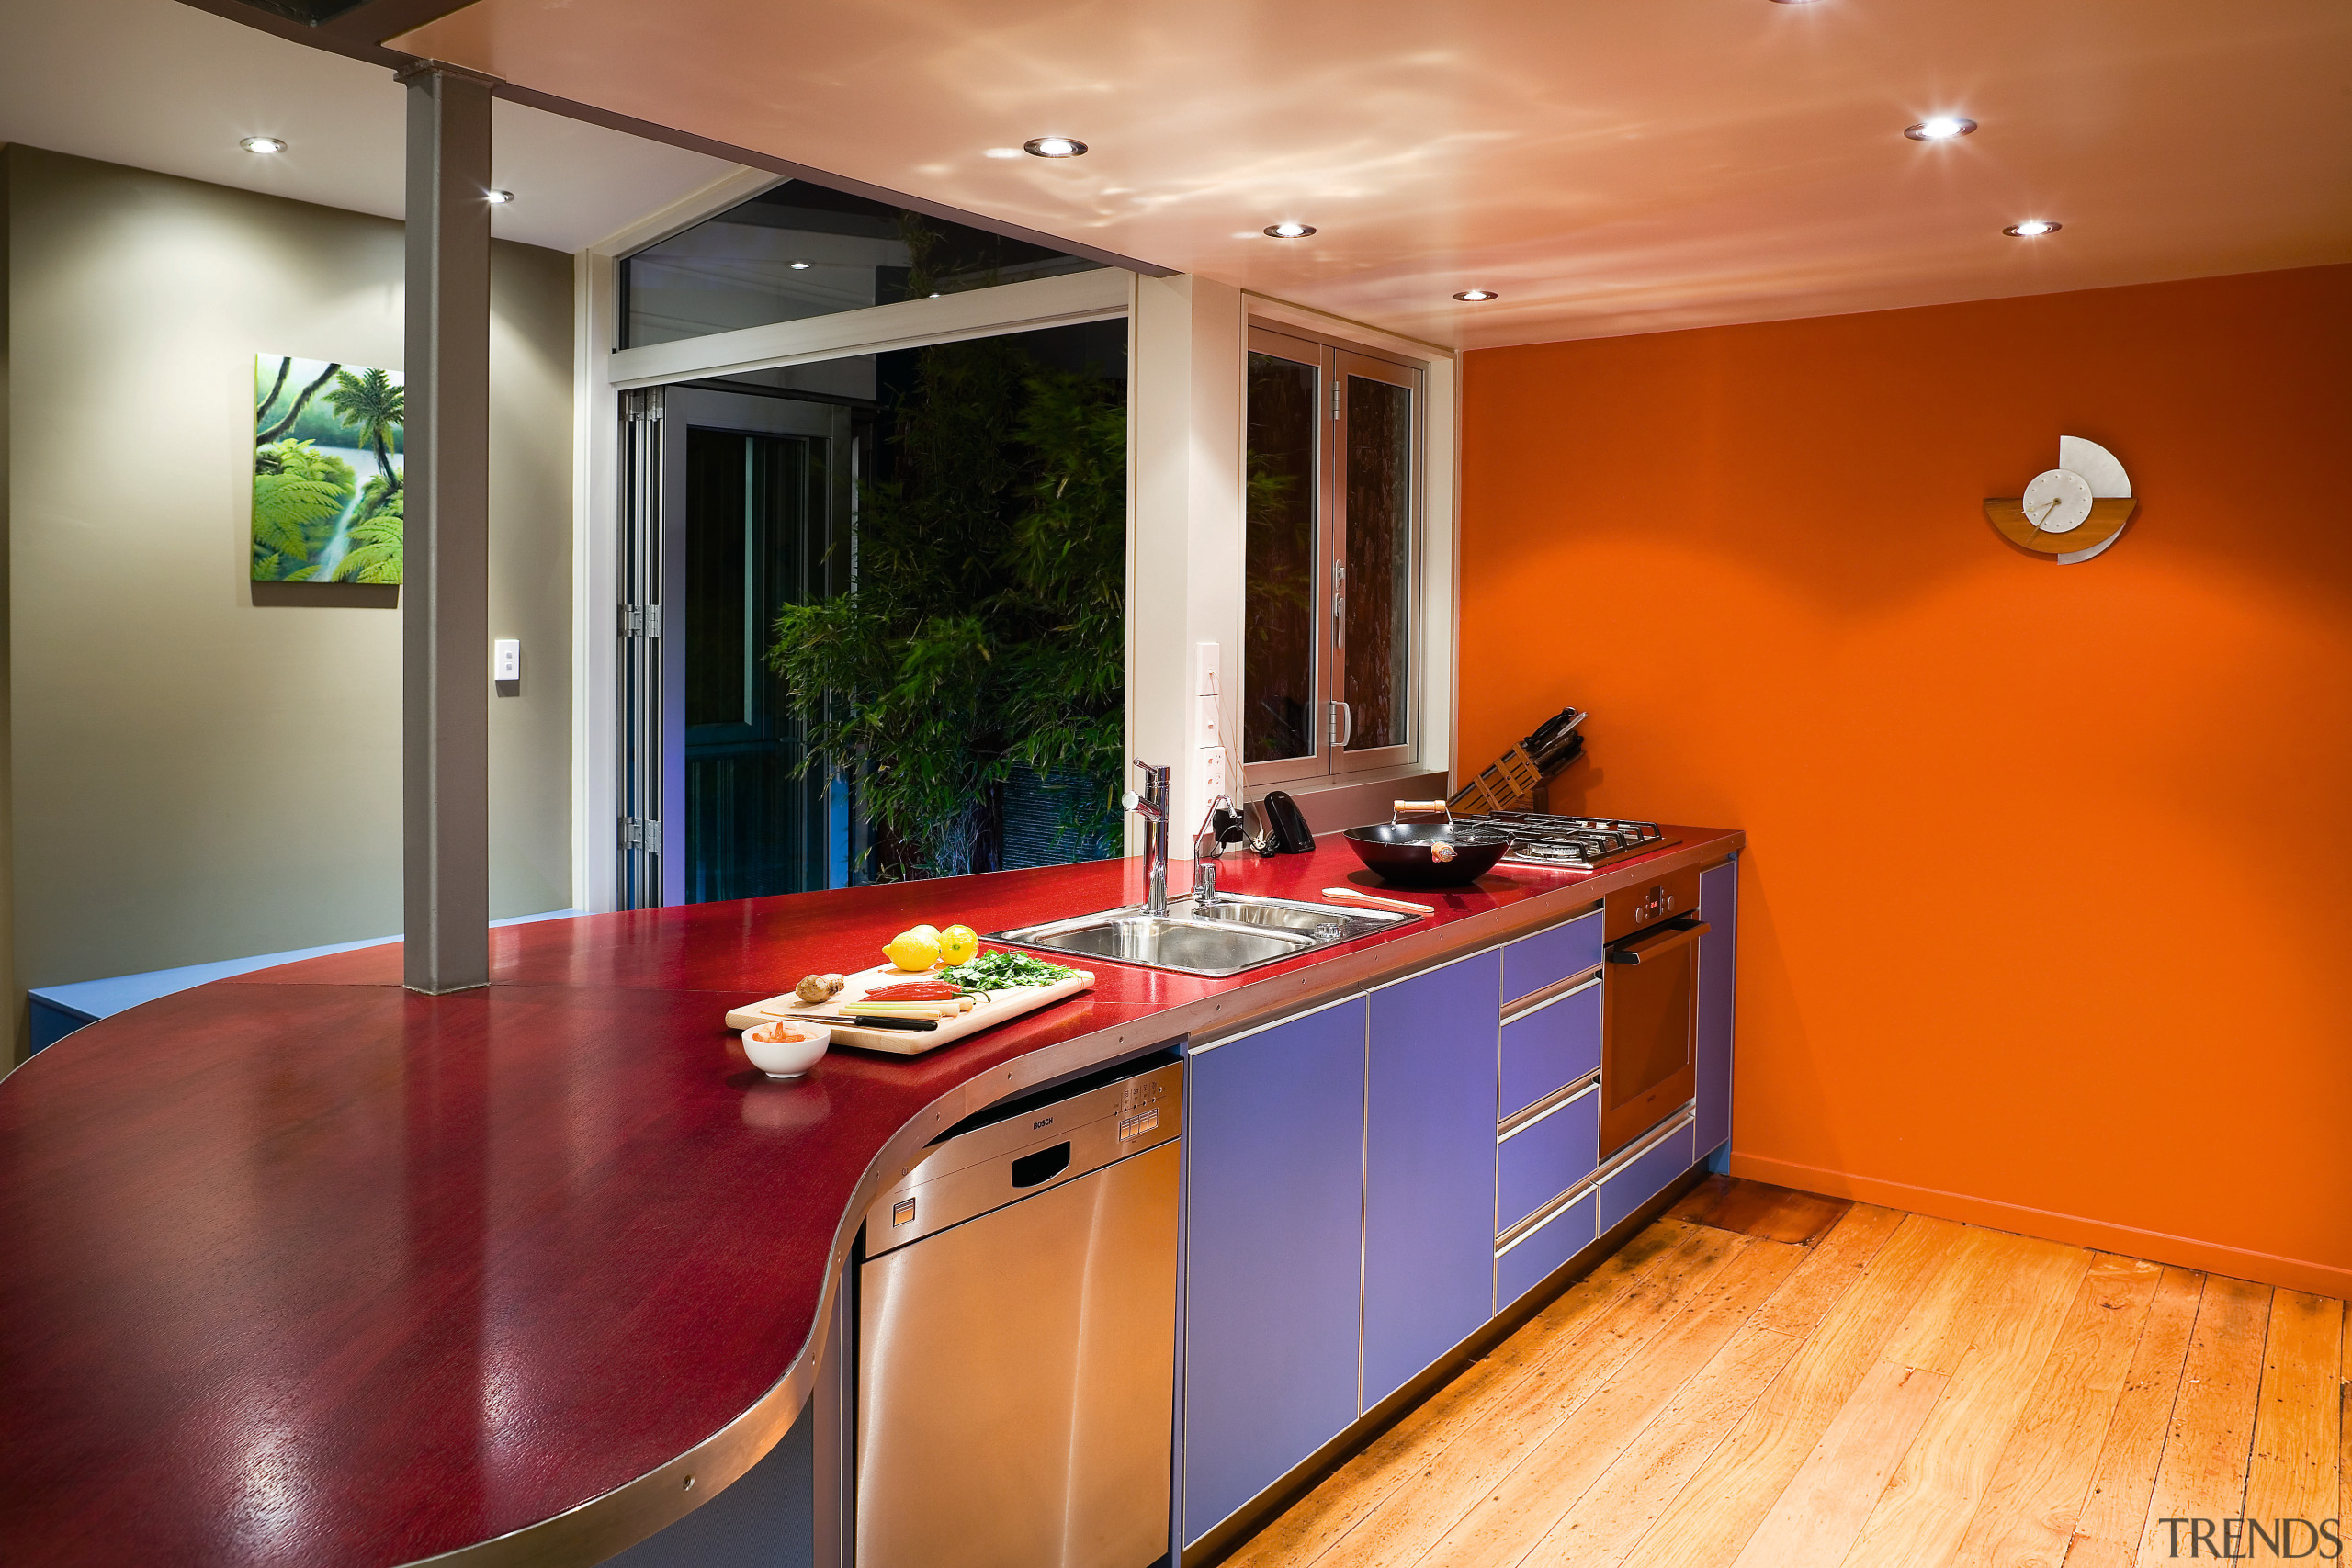 A view of this renovated ktichen featuring polished countertop, floor, interior design, kitchen, real estate, room, brown